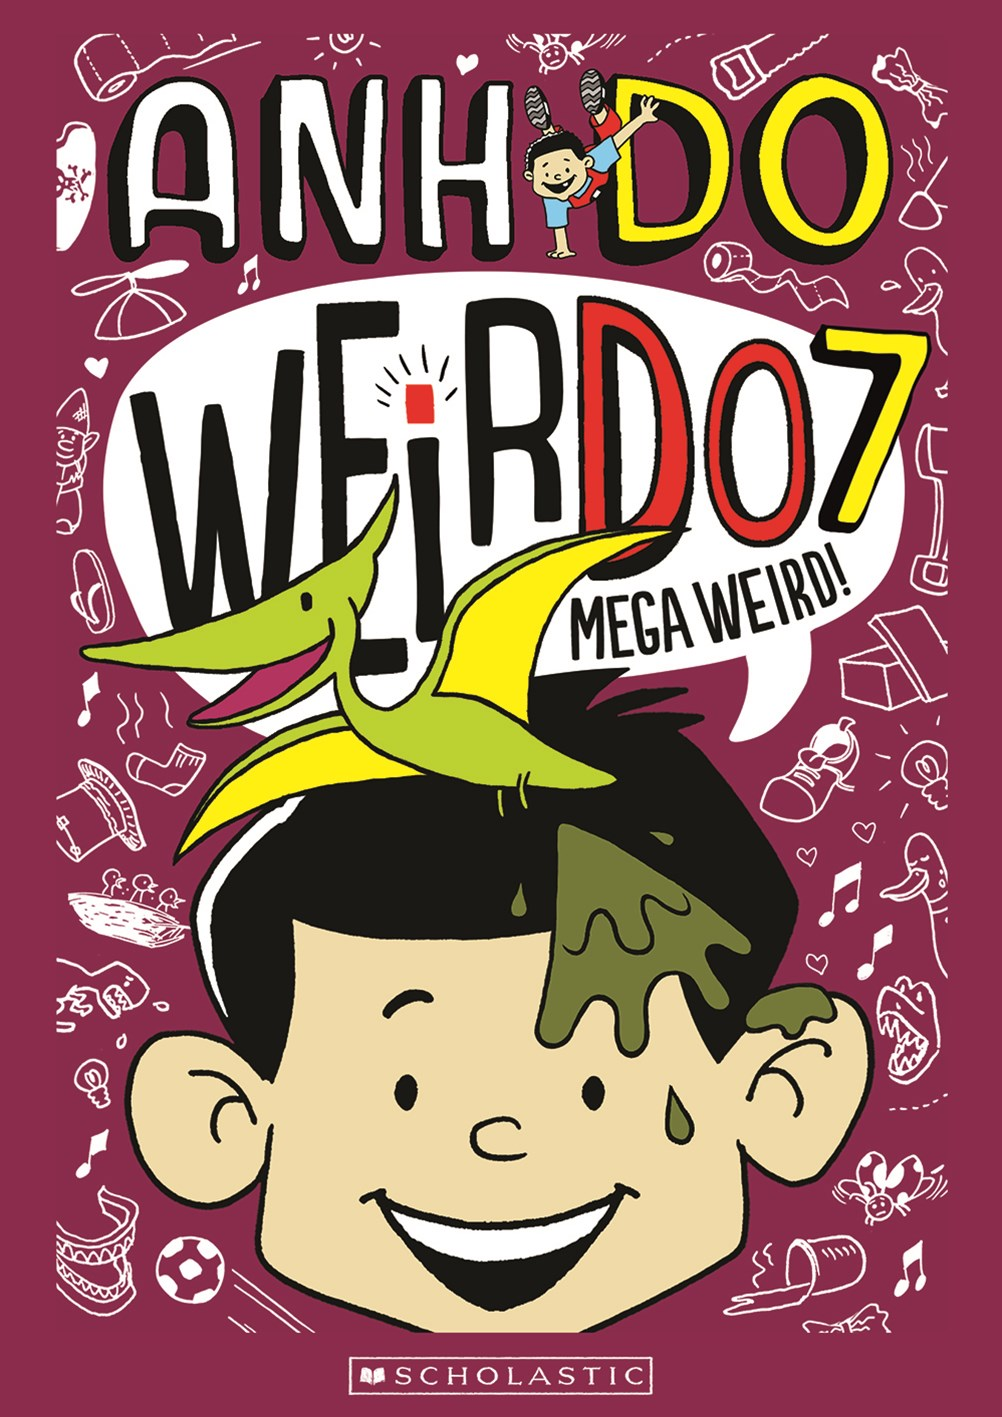 Mega Weird! (Weirdo Book 7)